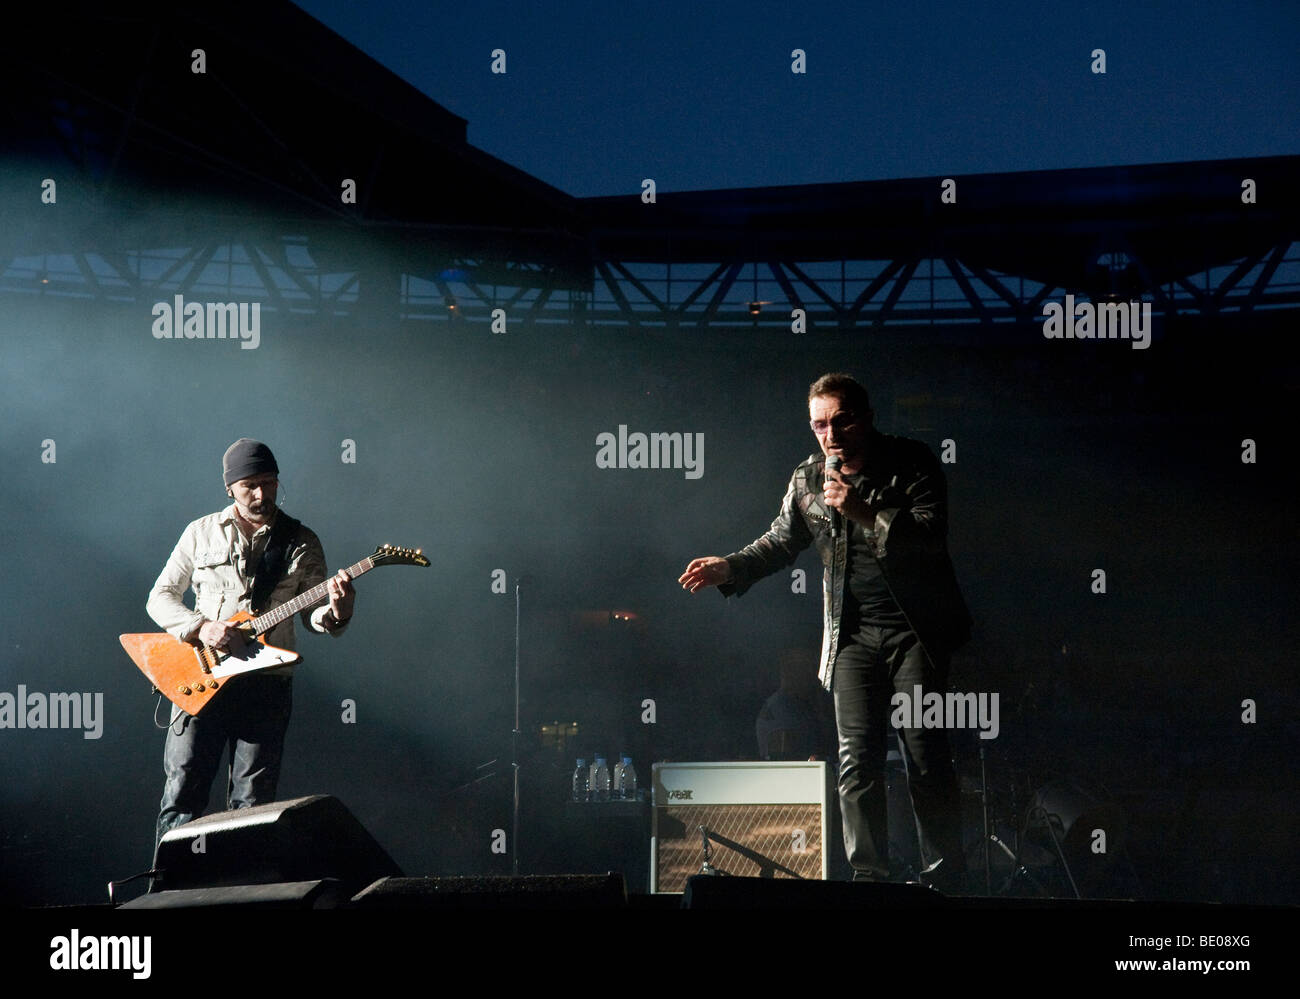 The Edge and Bono from U2 at Wembley Stadium in London on the 360 tour - Stock Image